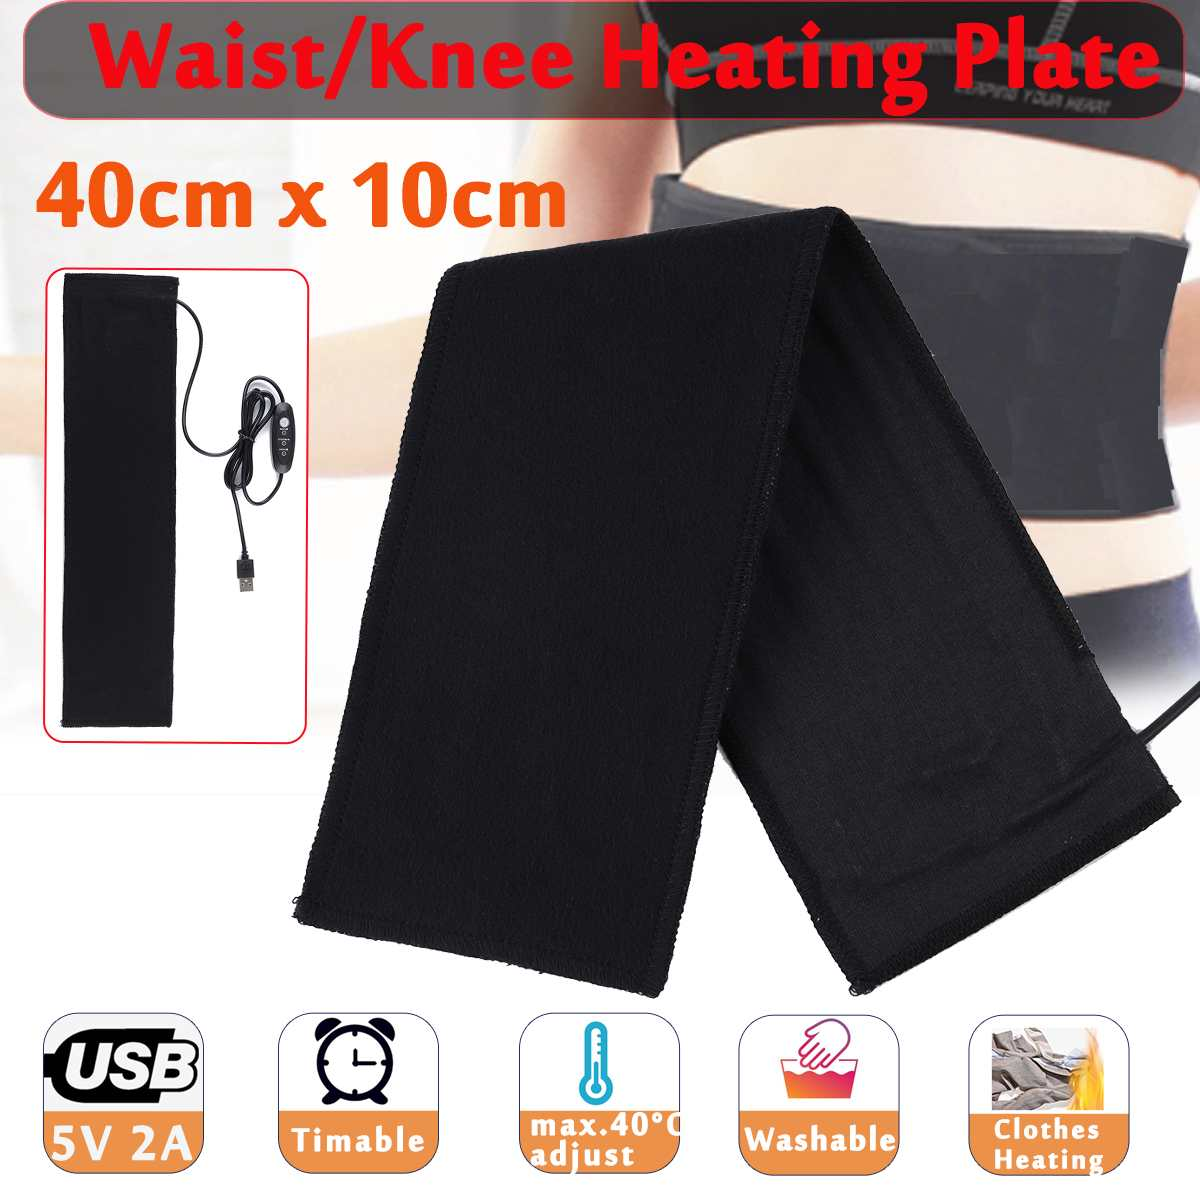 Electric Heating Pad 5V USB Washable Sewing Jackets Clothes Heating Pad Waterproof Waist/Knee Heater Plate Mat For Winter Warmer